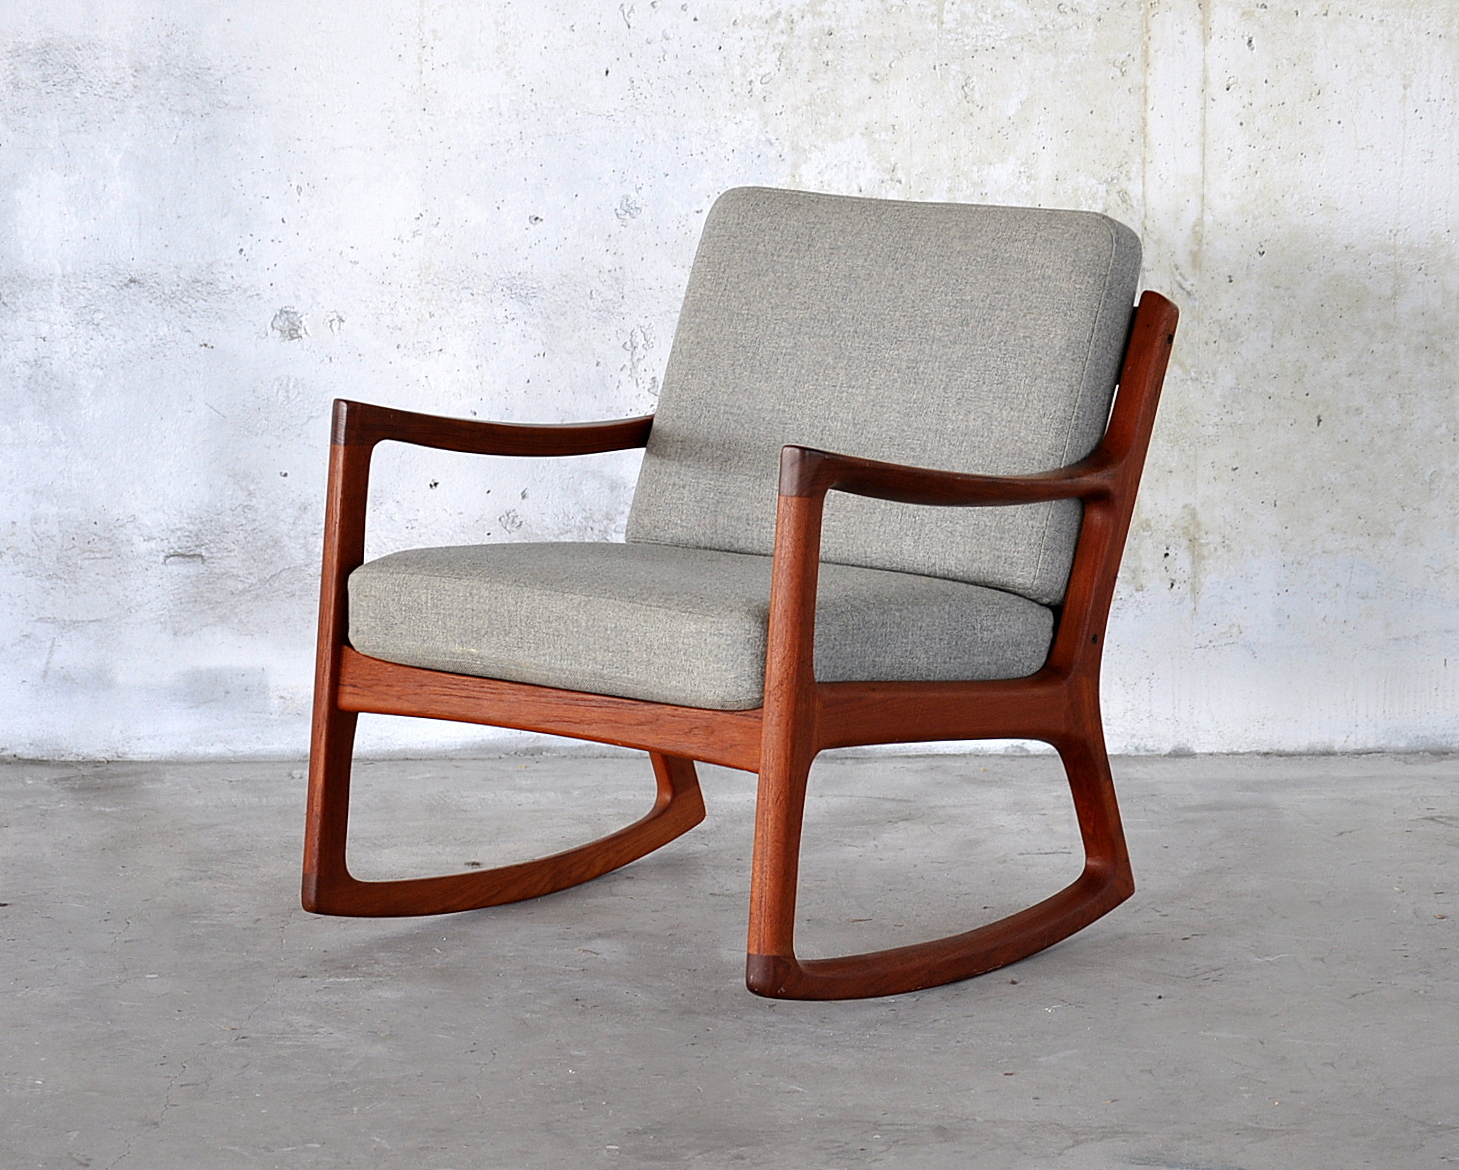 Select modern ole wanscher teak rocking chair for Rocking chair